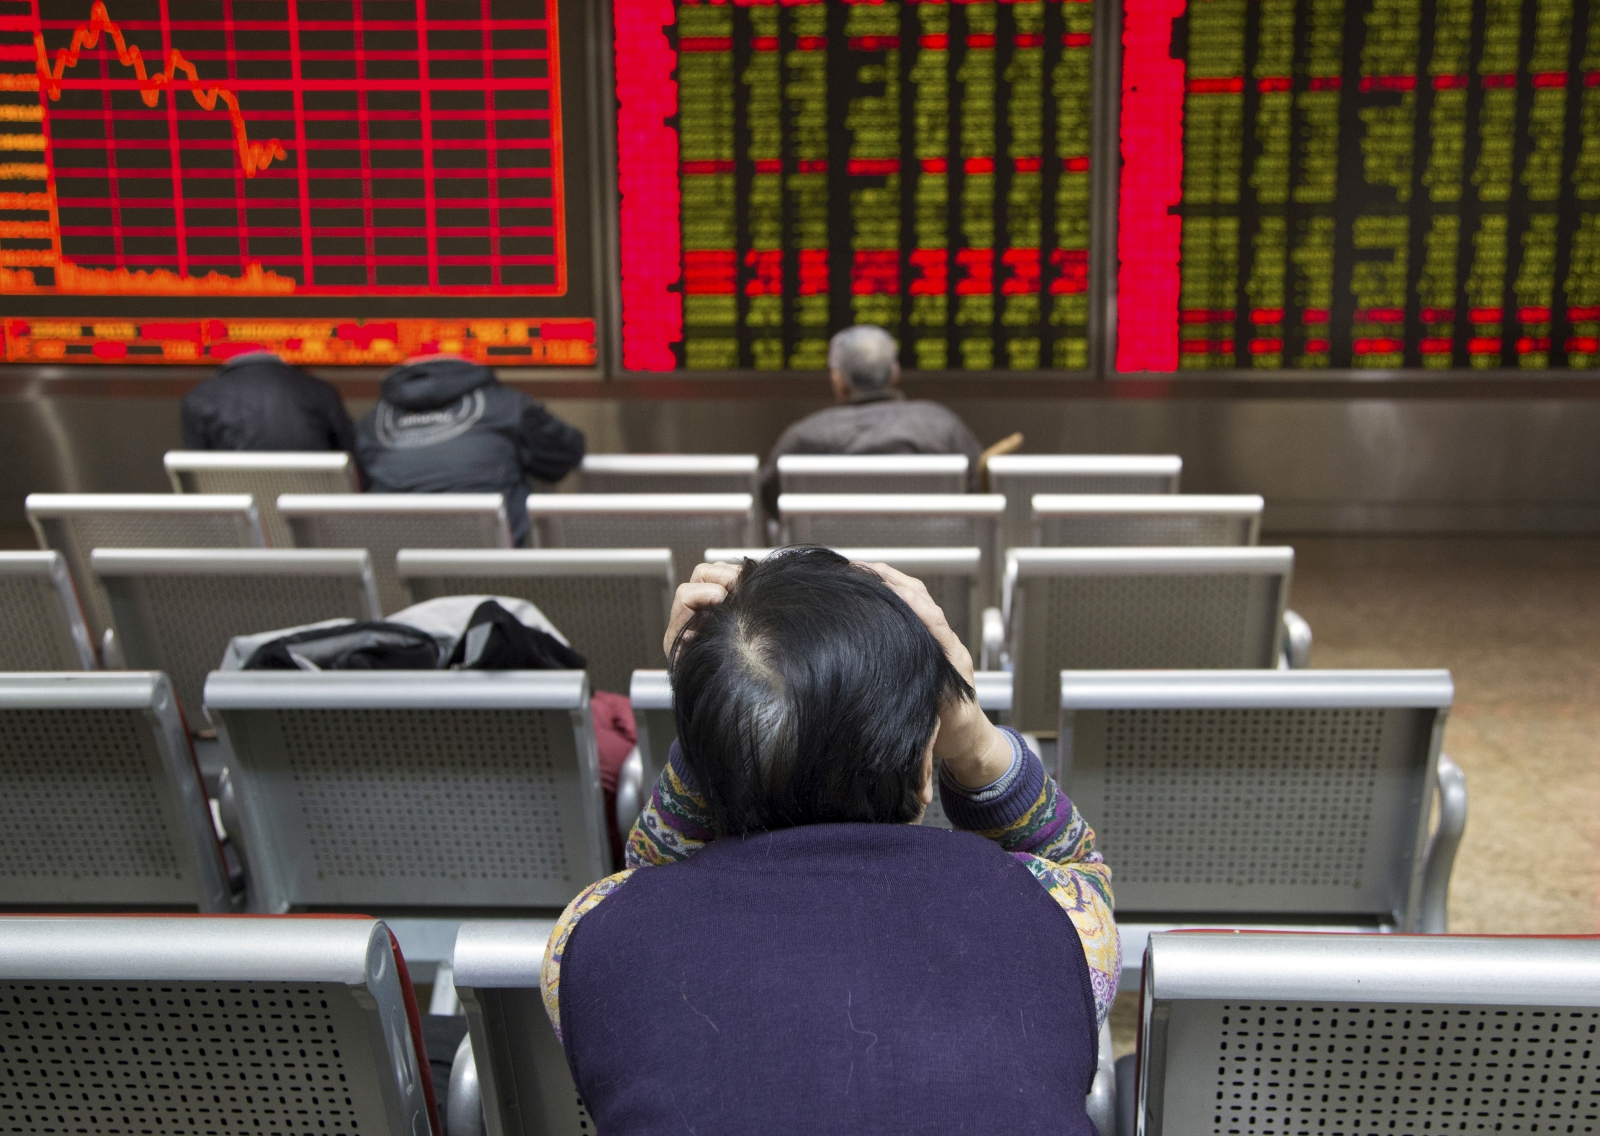 Asian markets trade lower amid concerns over US economy and the outcome of UK referendum and other political events